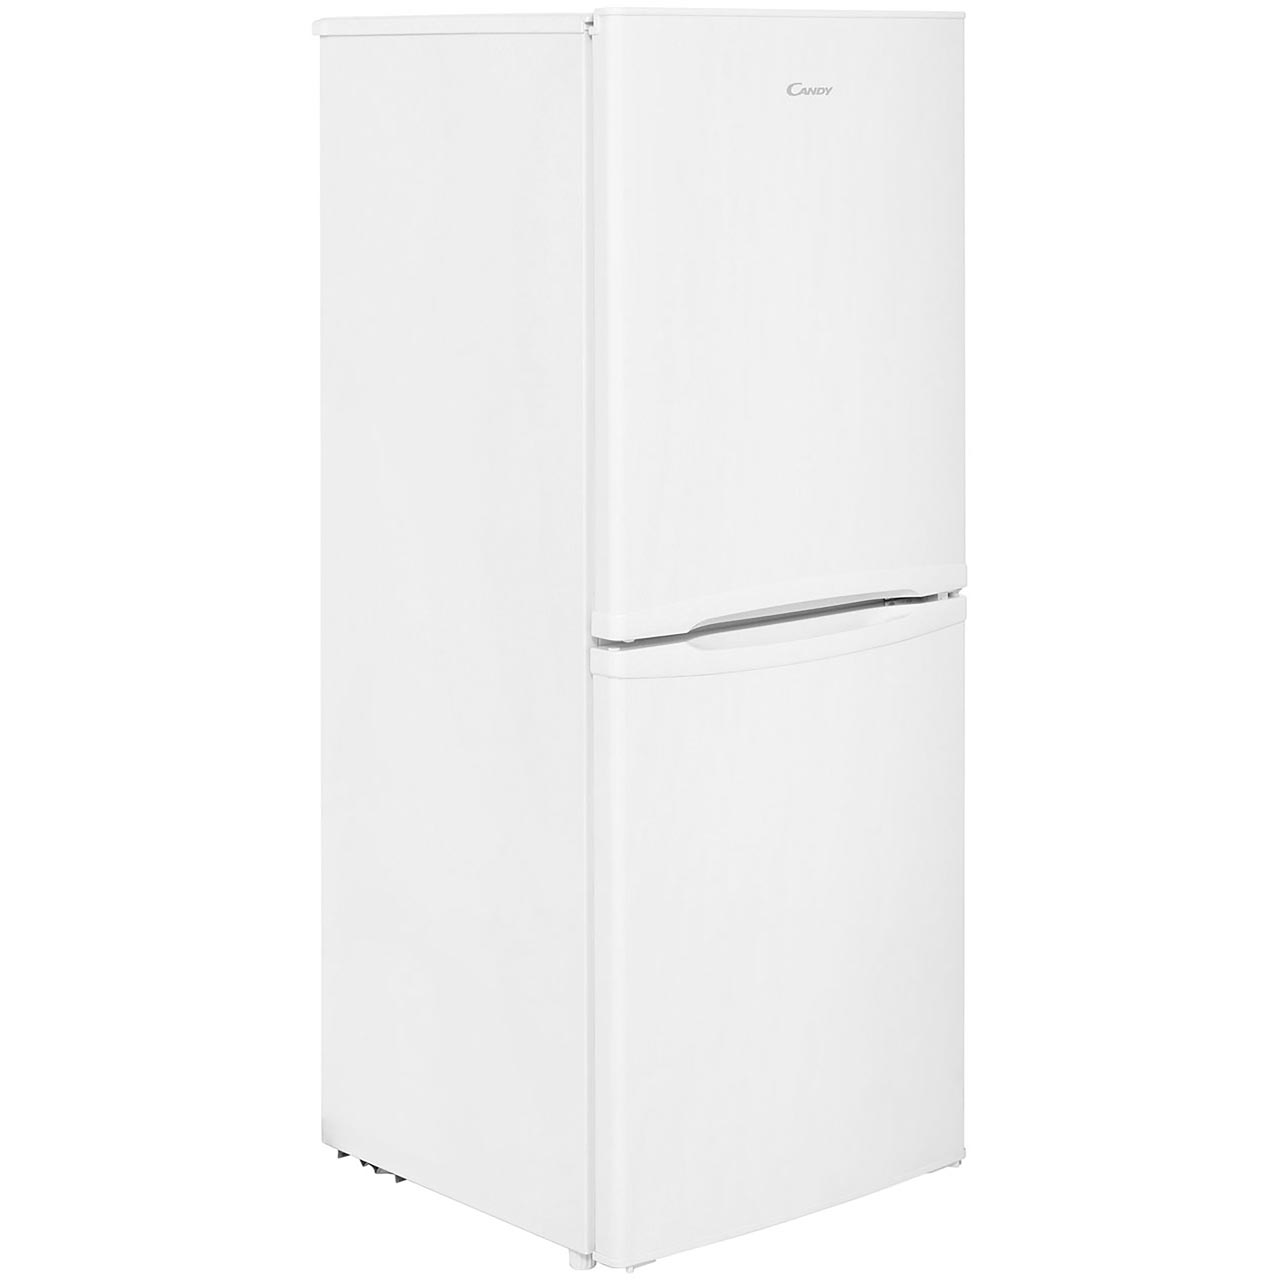 Refrigerators Candy (Kandy): models, reviews about the manufacturer, comparison with competitors 80